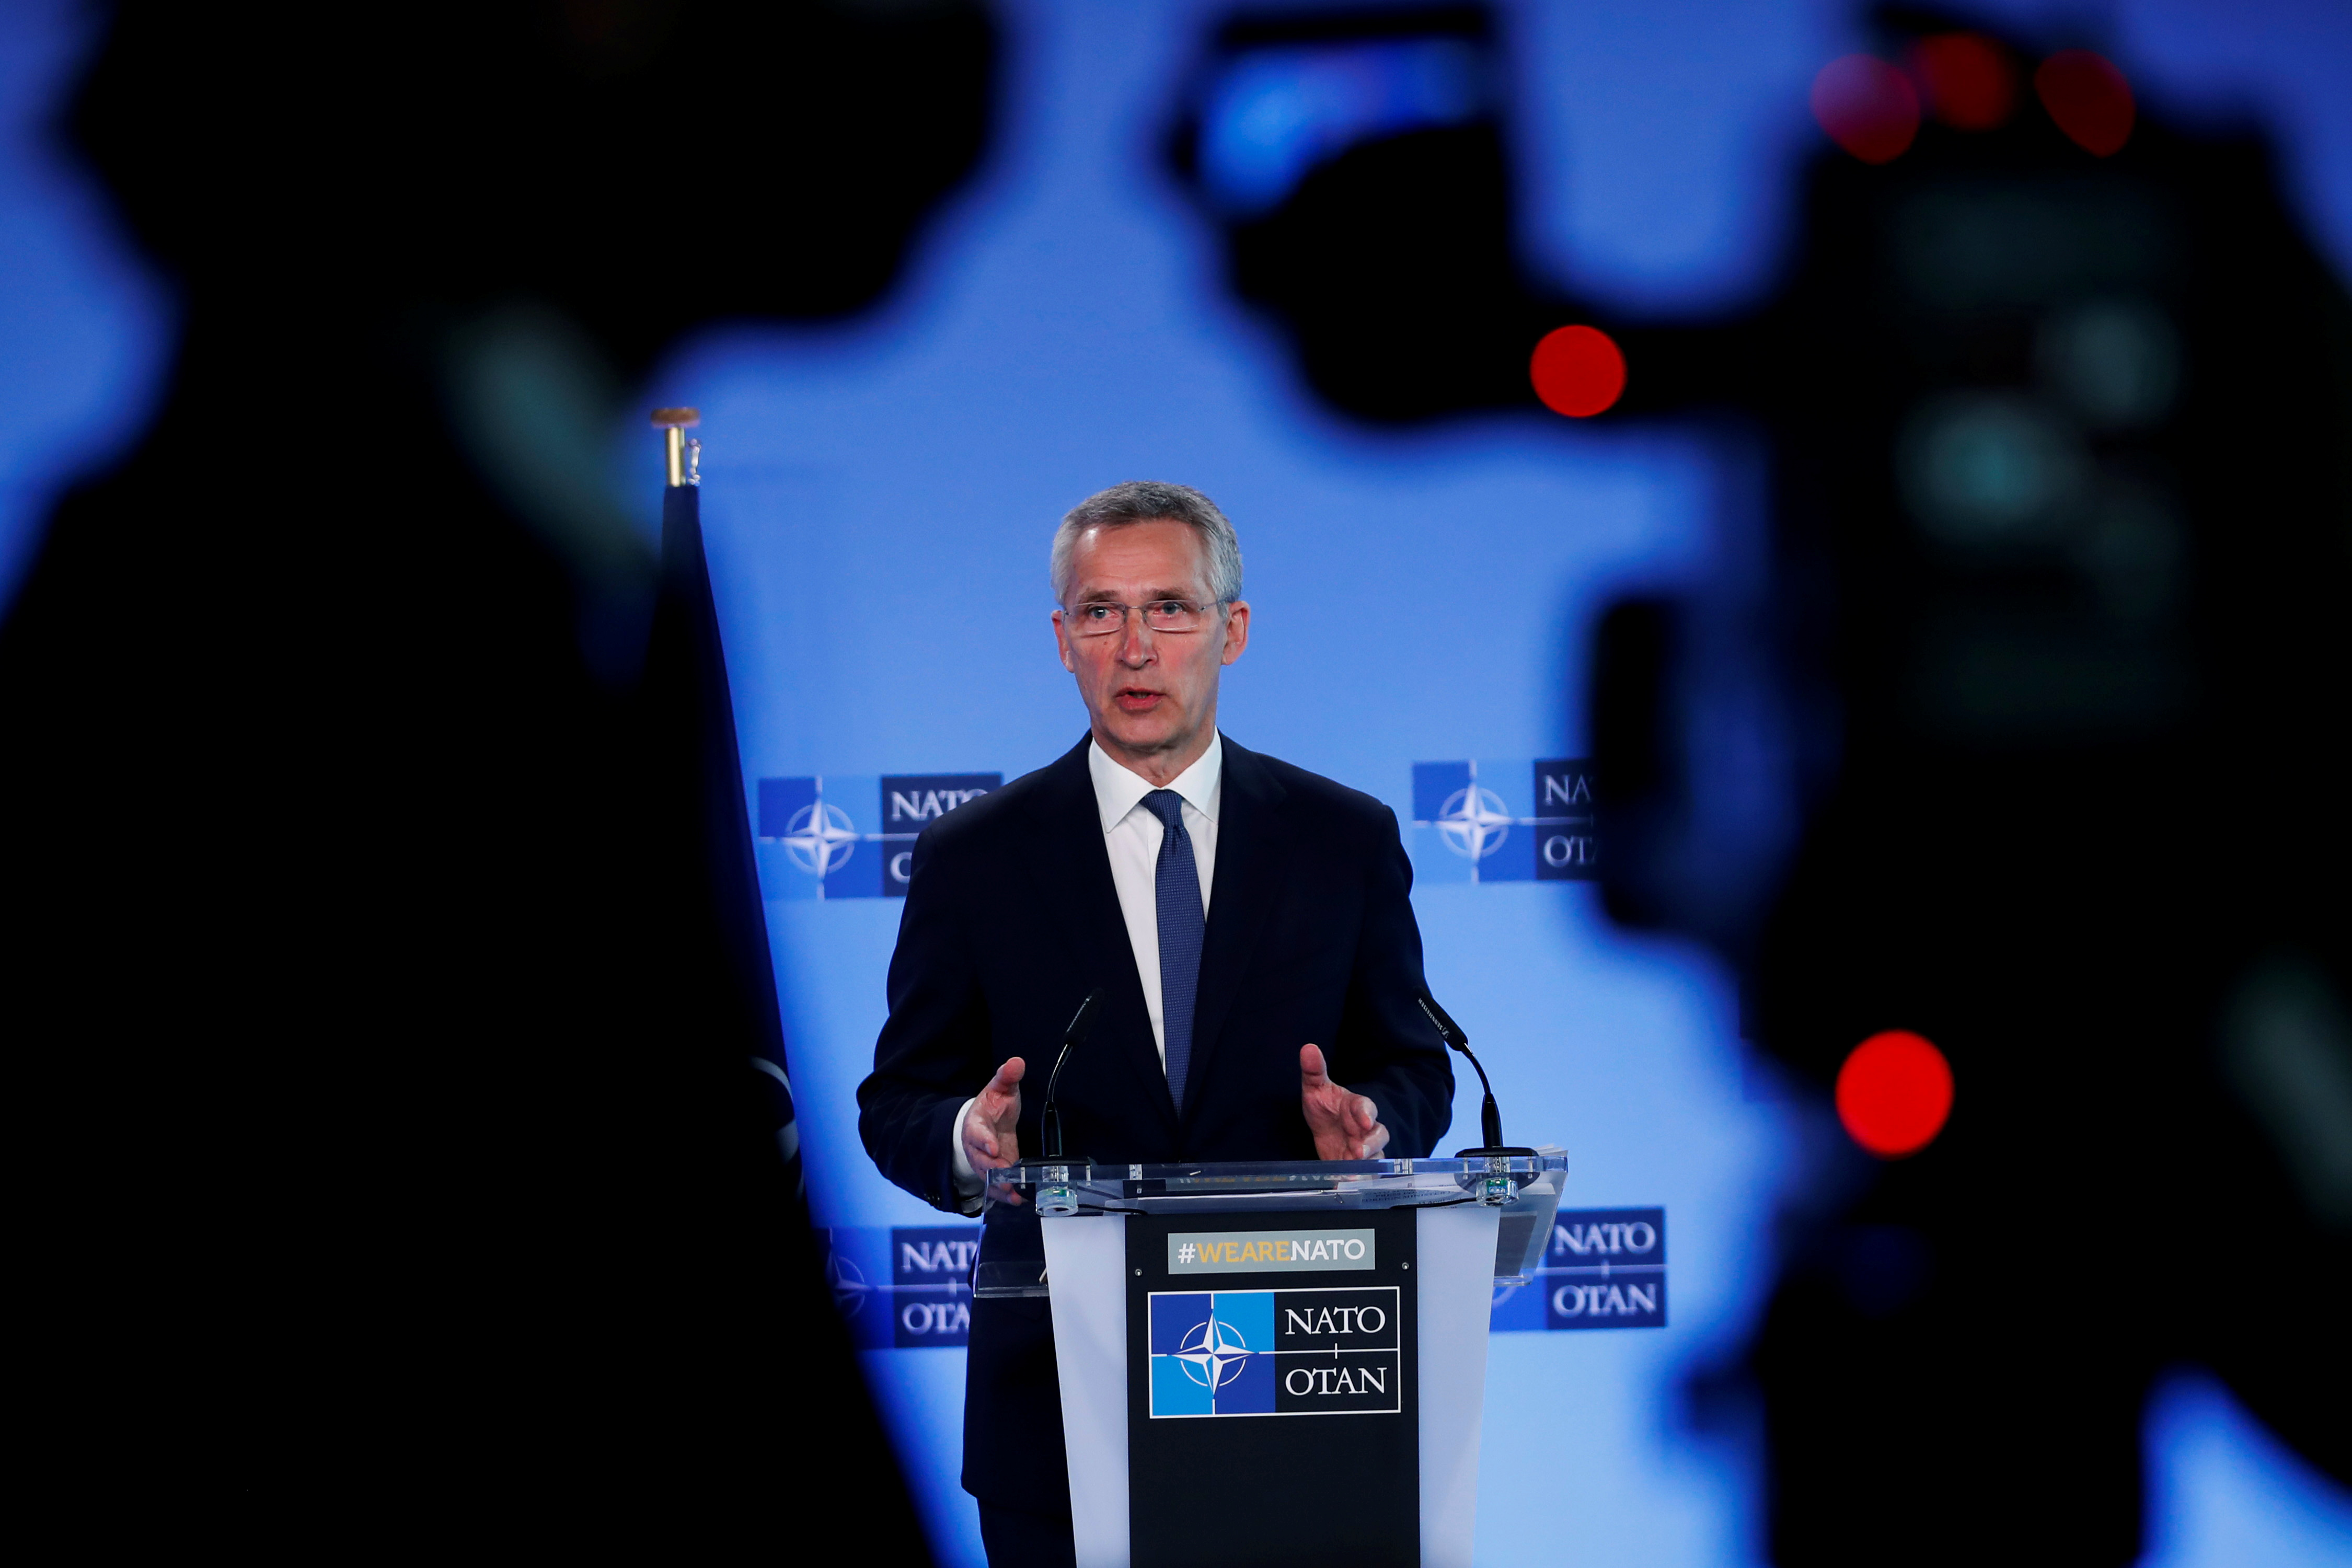 NATO Secretary General Jens Stoltenberg speaks during a media conference at NATO headquarters in Brussels, Belgium, April 13, 2021. Francisco Seco/Pool via REUTERS